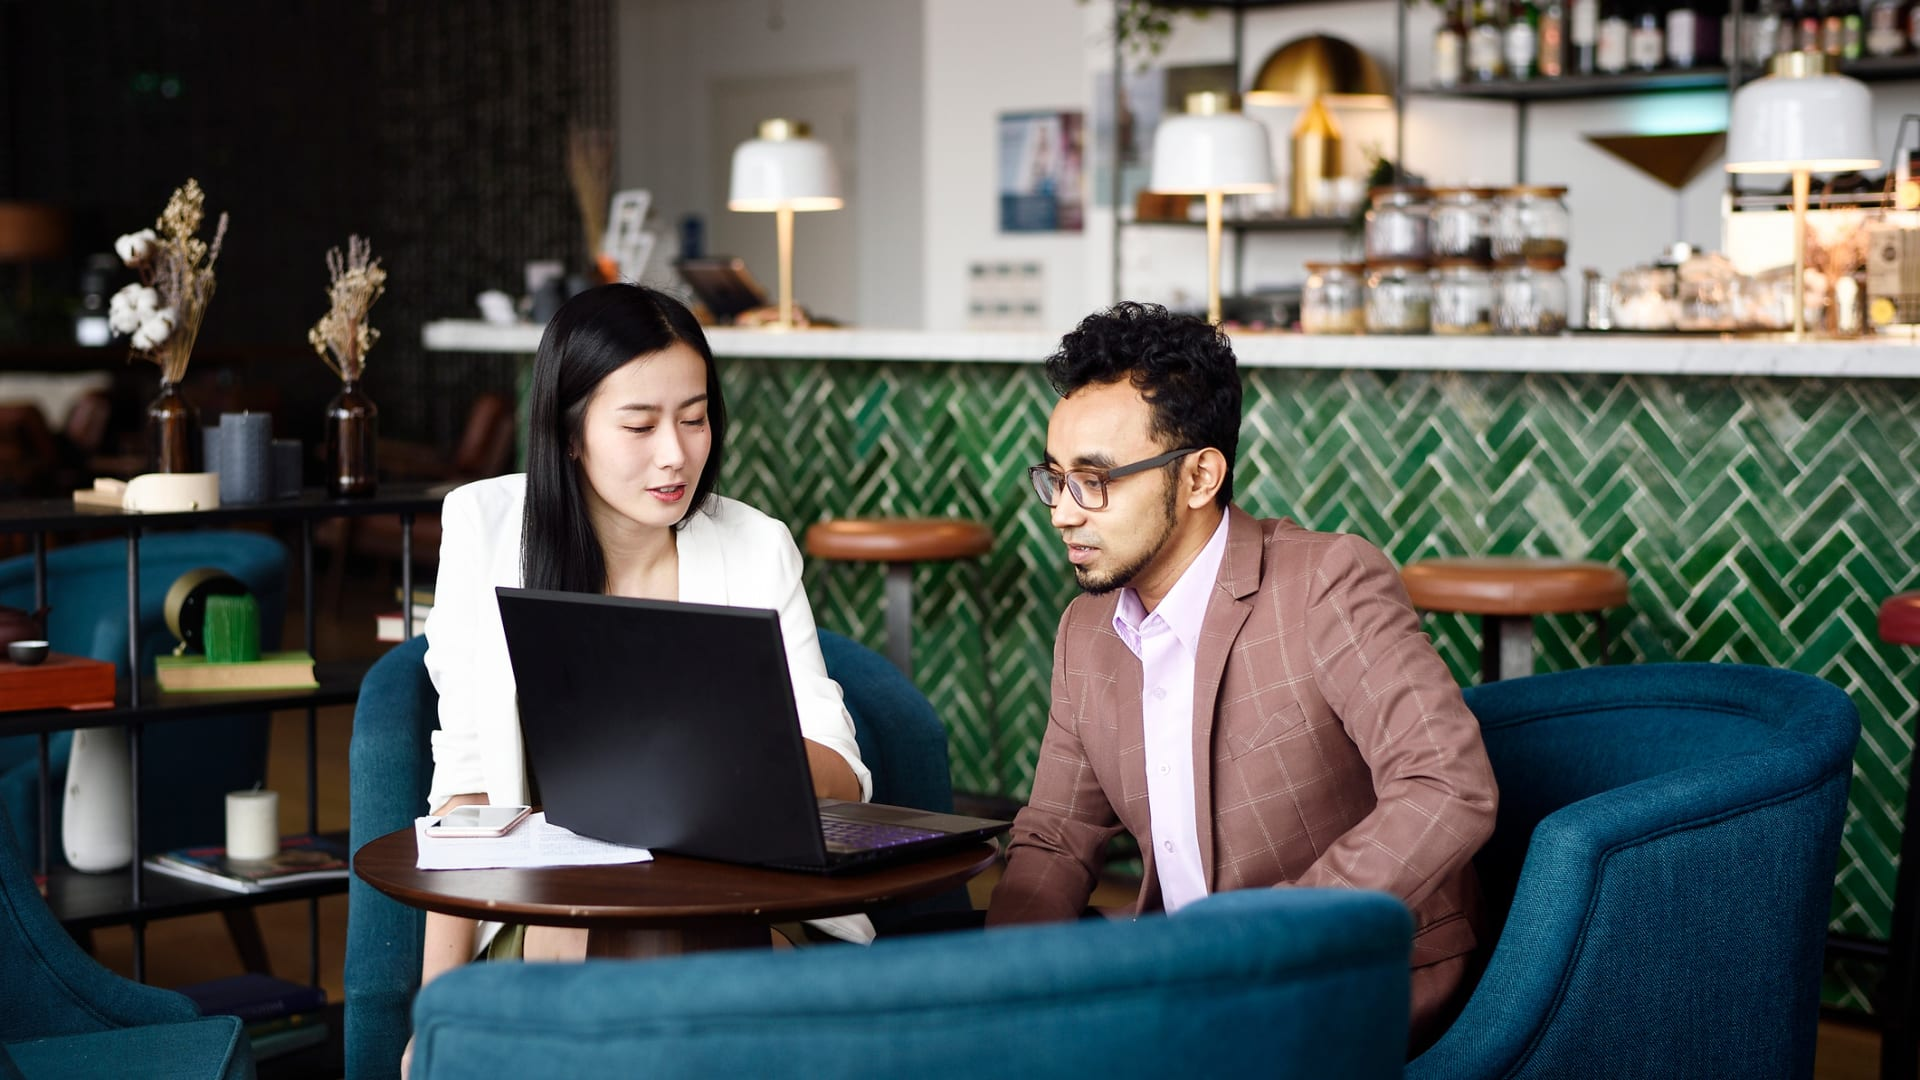 How to Find the Right Advisers for Your Business